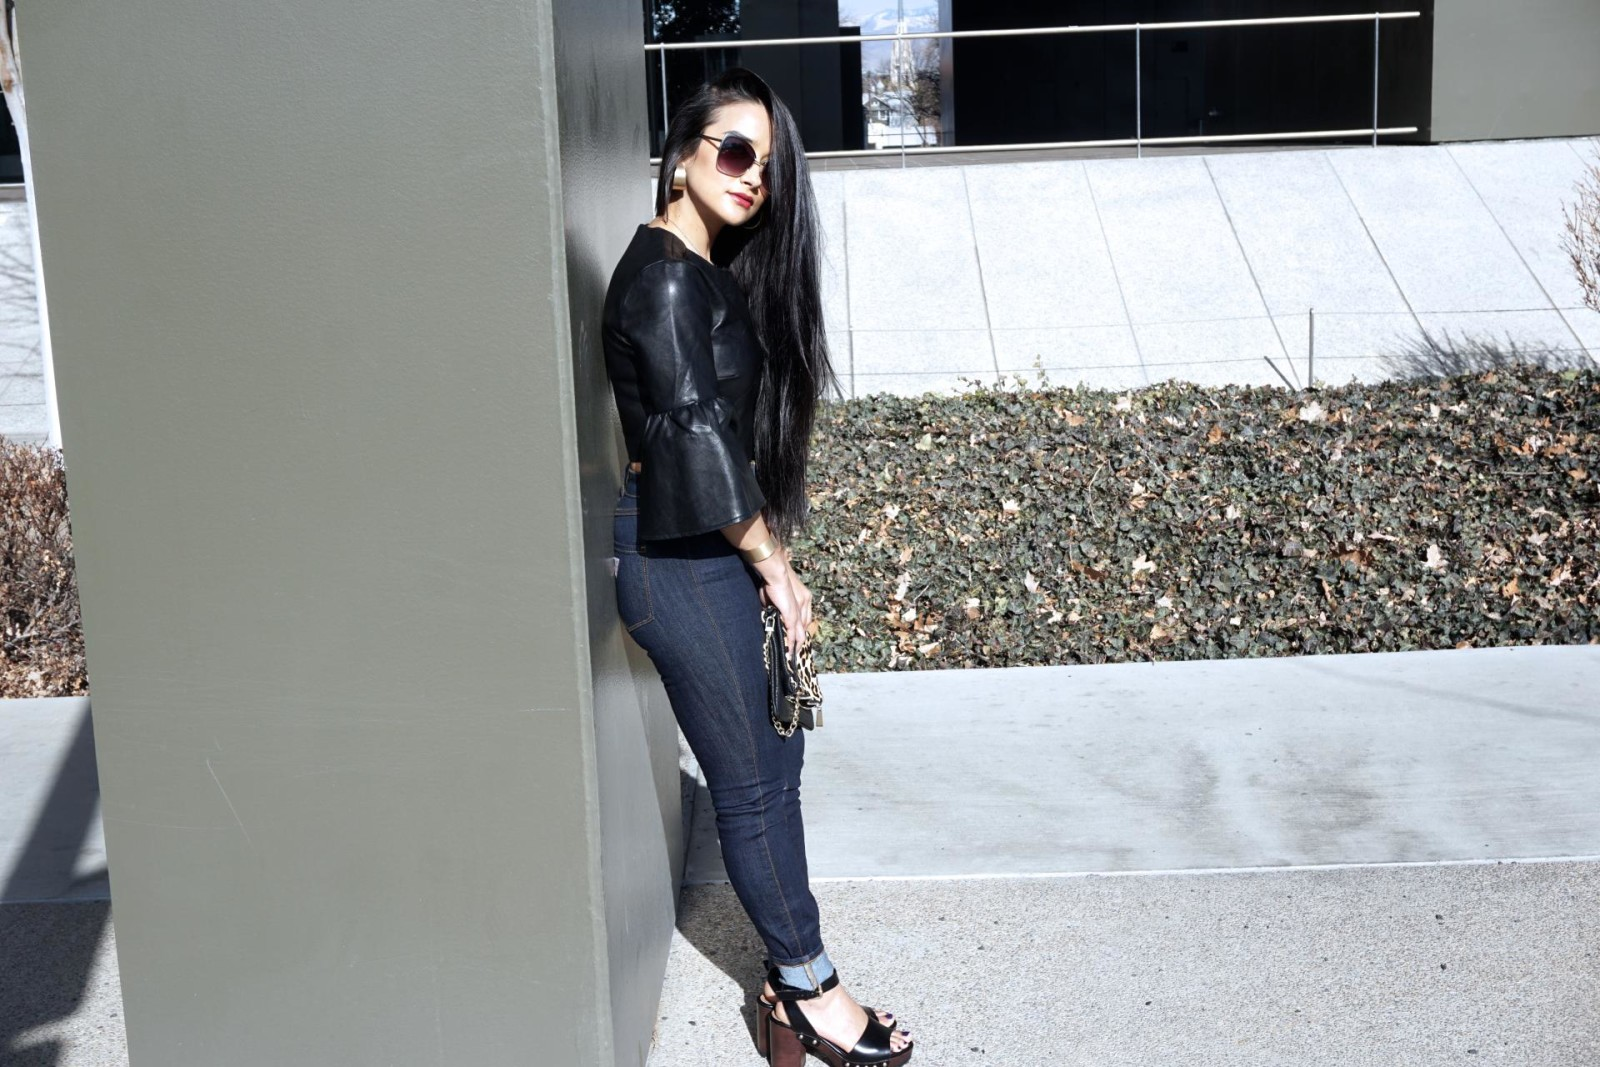 Nasty Gal Party Town Bell Sleeve Top, Long Hair, Black leather, Zara Shoes, Sandals with Ankle strap and track sole, Black sandals, Spring shoes, Dark denim, cuffed jeans